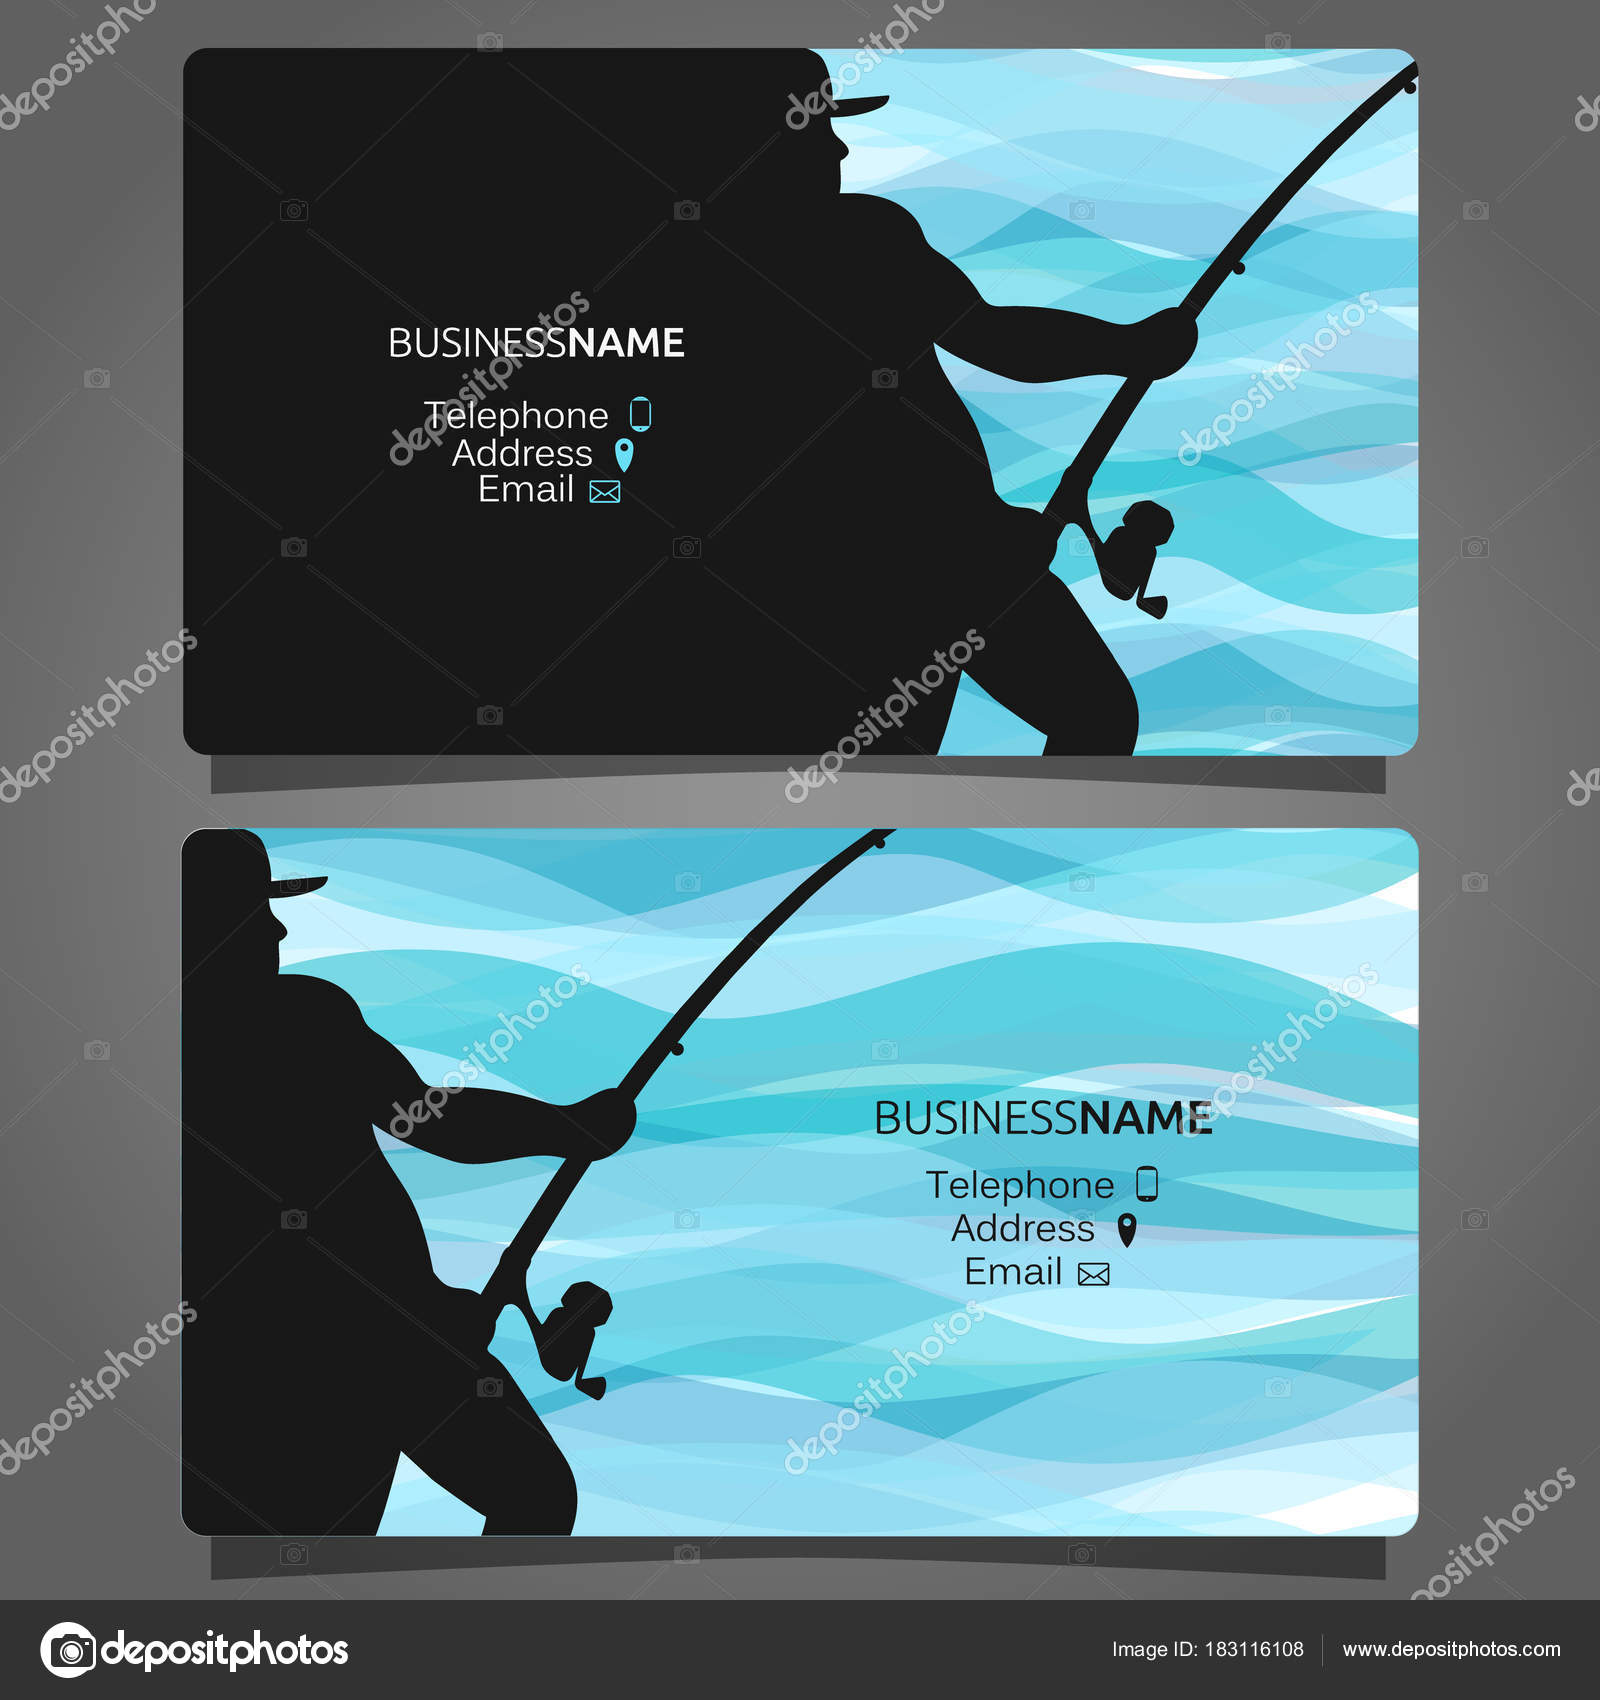 Shop fishing business card — Stock Vector © john1279 #183116108